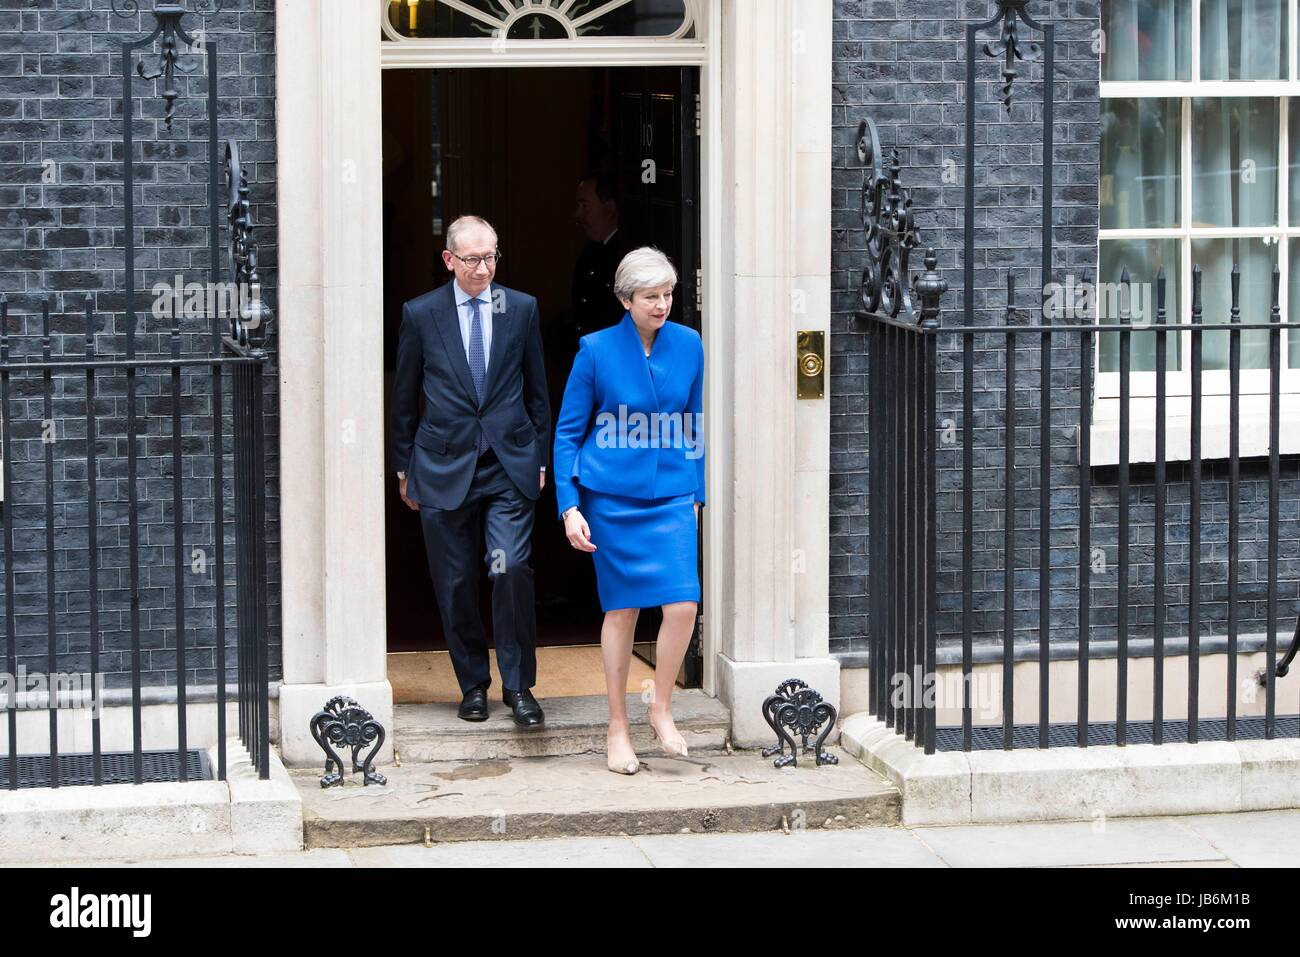 London, UK. 9th Jun, 2017. A hung parliament as May fails to win majority. Prime Minister and Conservative Party leader Theresa May and her husband, Philip May, leave 10 Downing Street to visit the Queen. London, UK. 09/06/2017 | usage worldwide Credit: dpa picture alliance/Alamy Live News Stock Photo